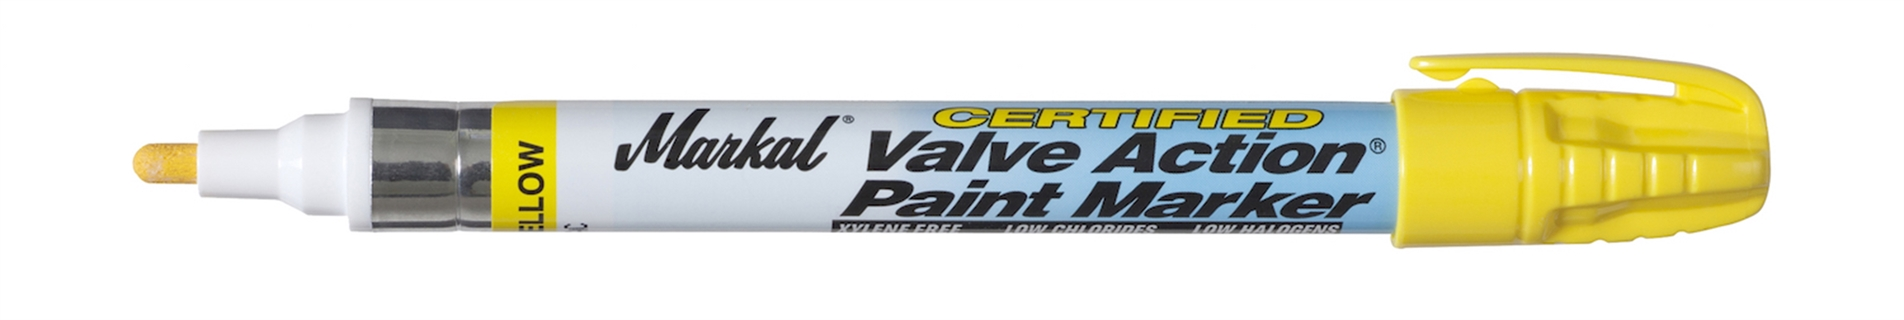 Picture of Certified Valve Action® Paint Marker yellow